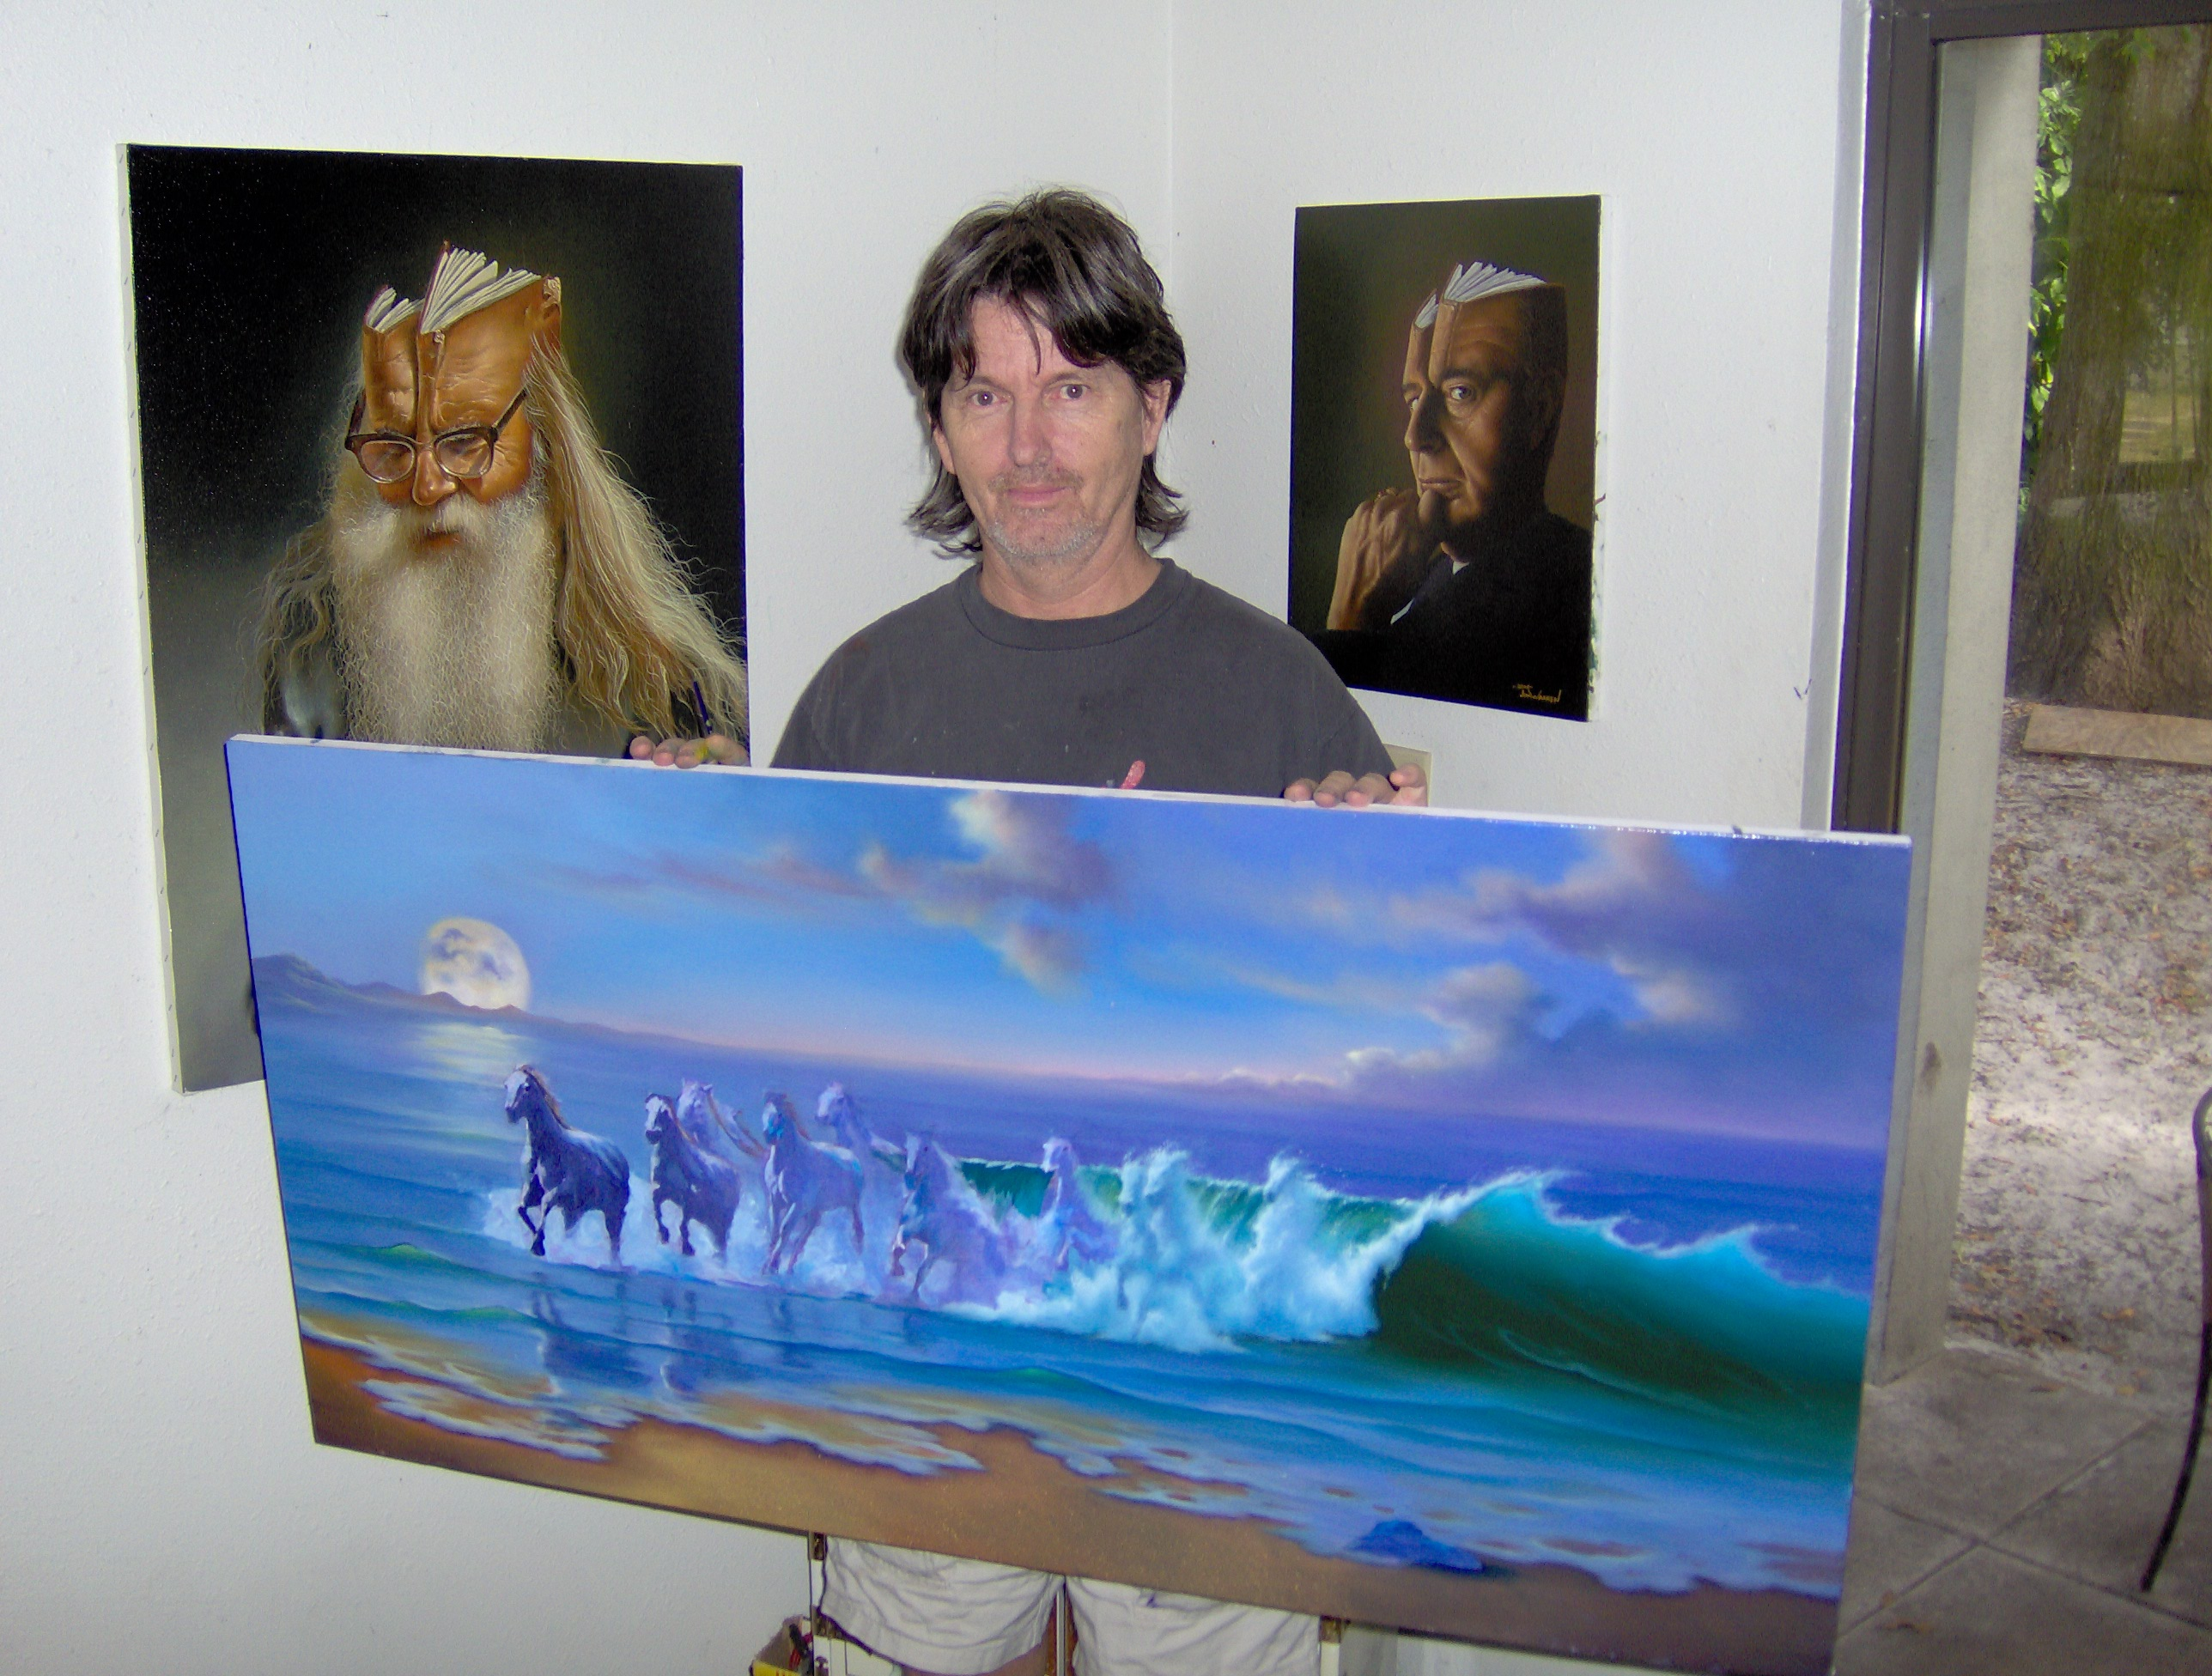 Jim Warren at Wyland Gallery Sarasota